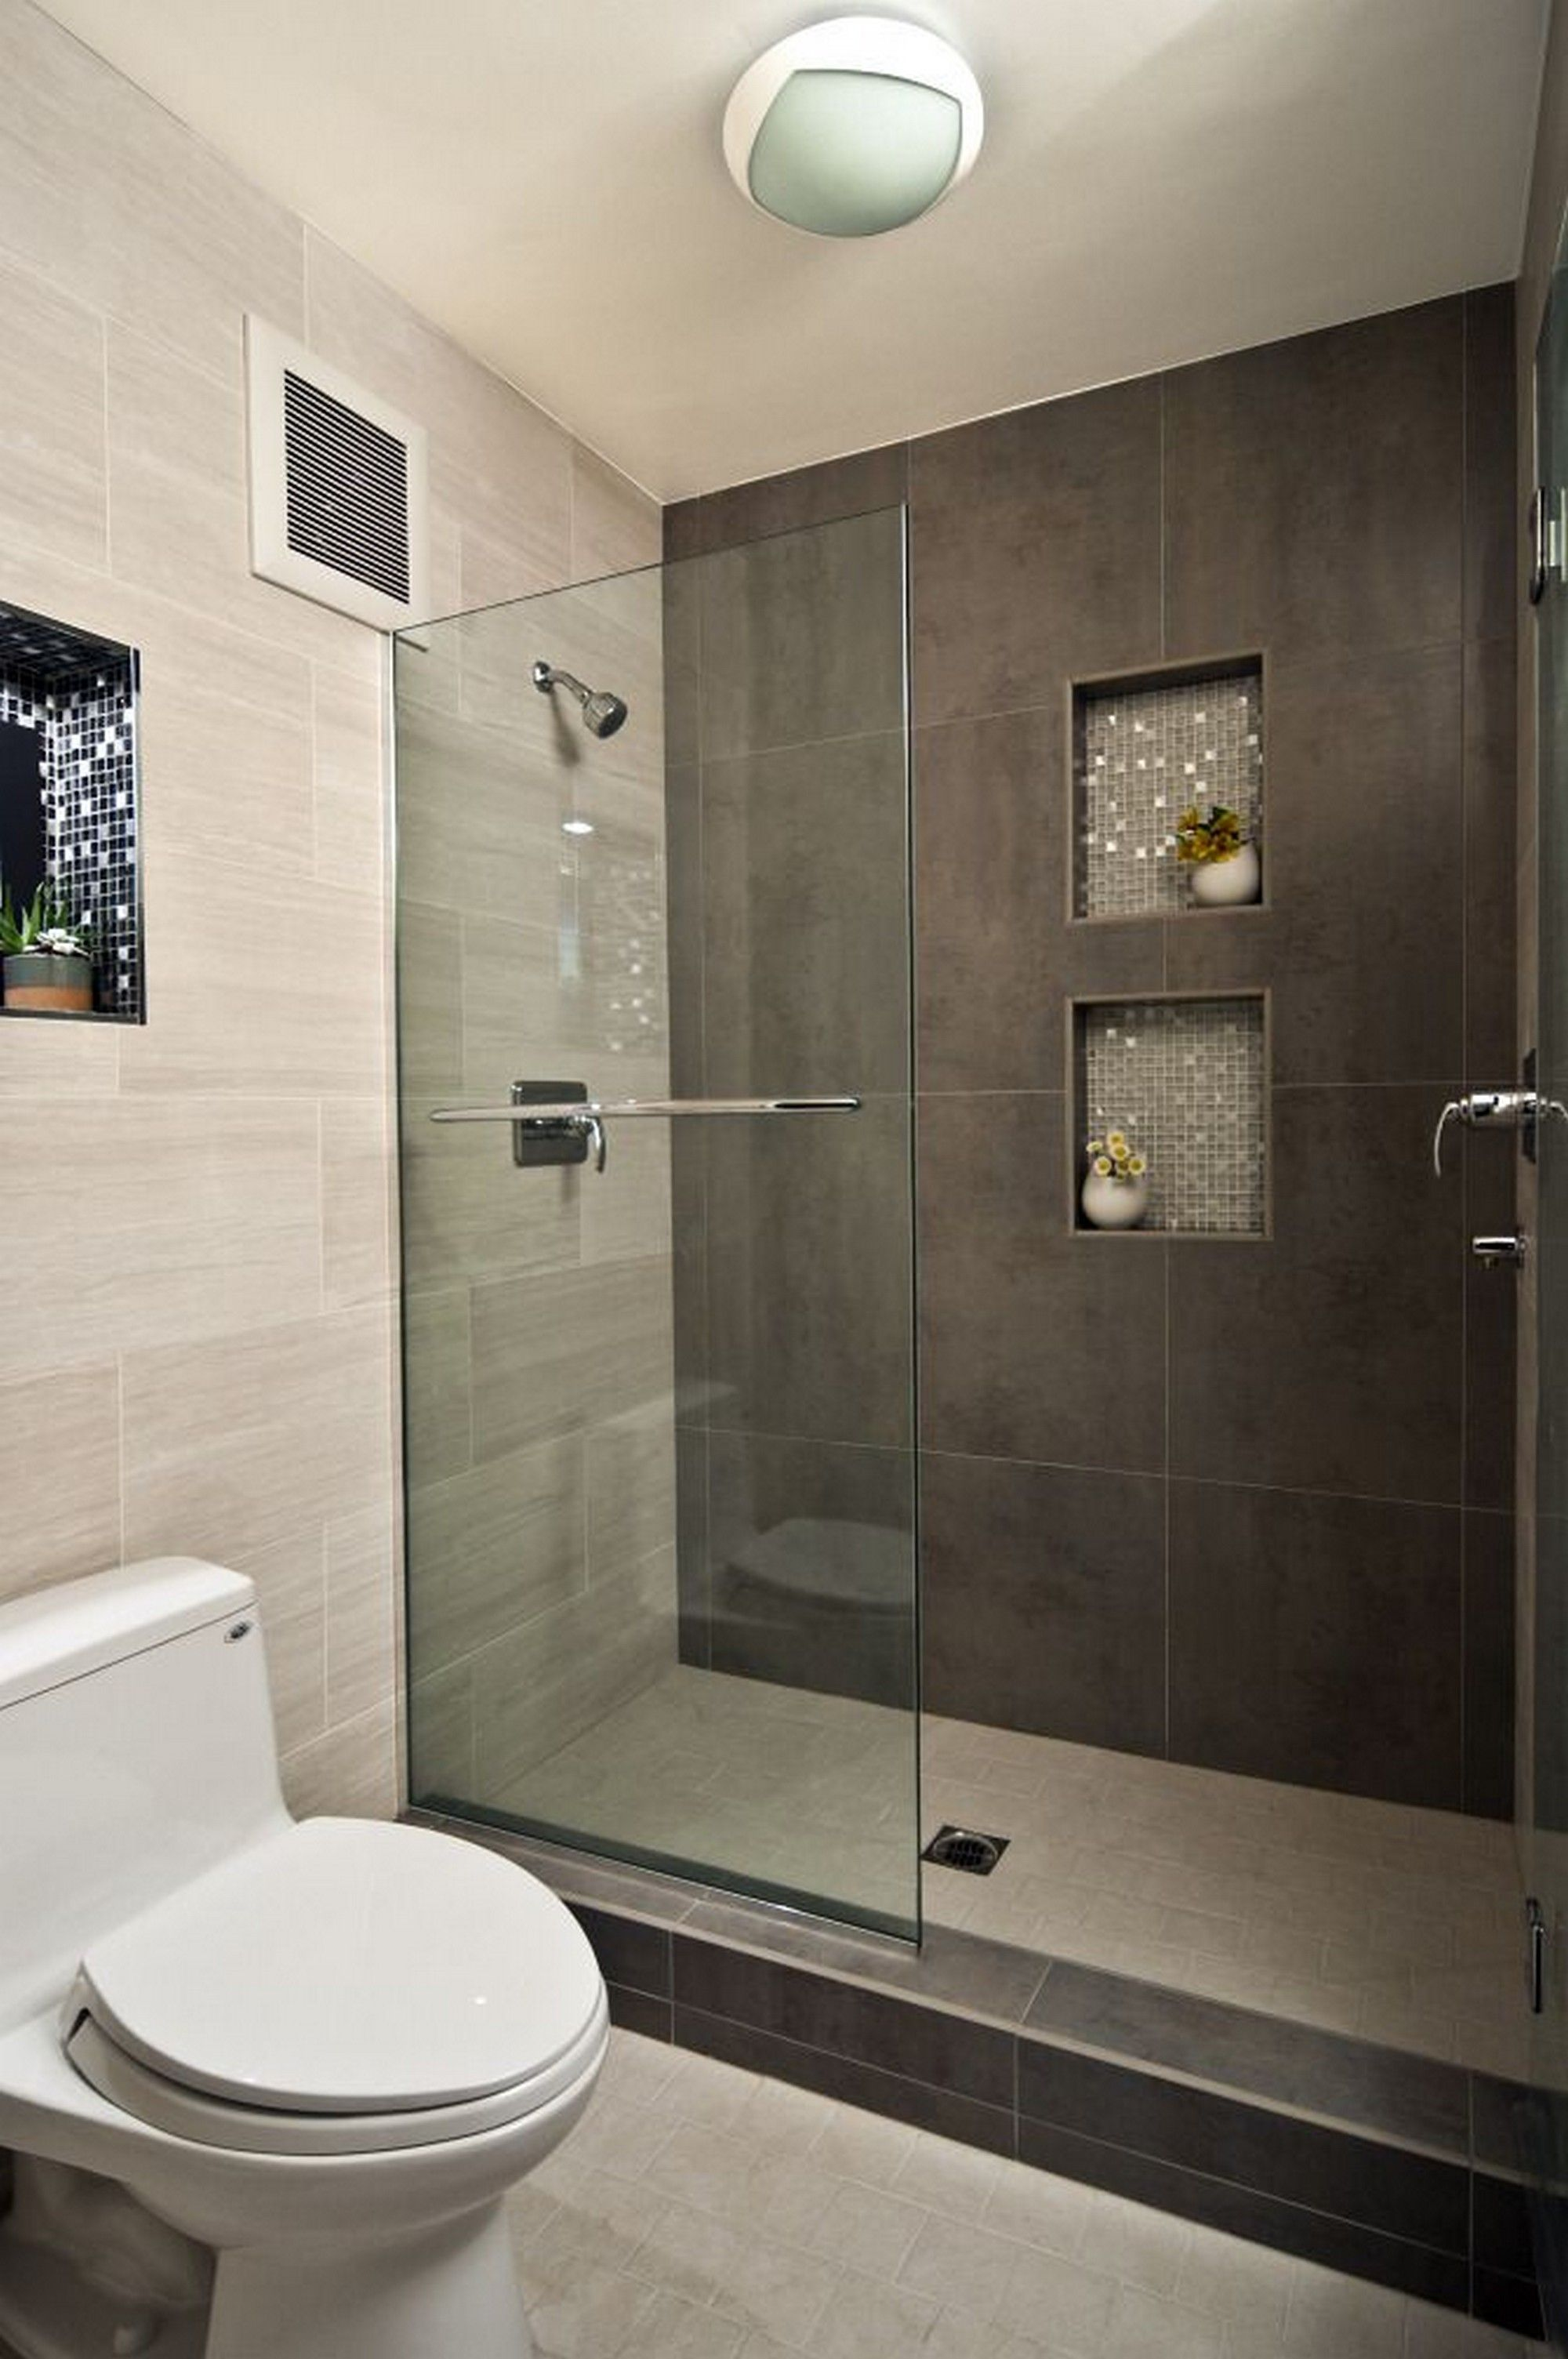 Modern bathroom design ideas with walk in shower small for Small bathroom designs no toilet